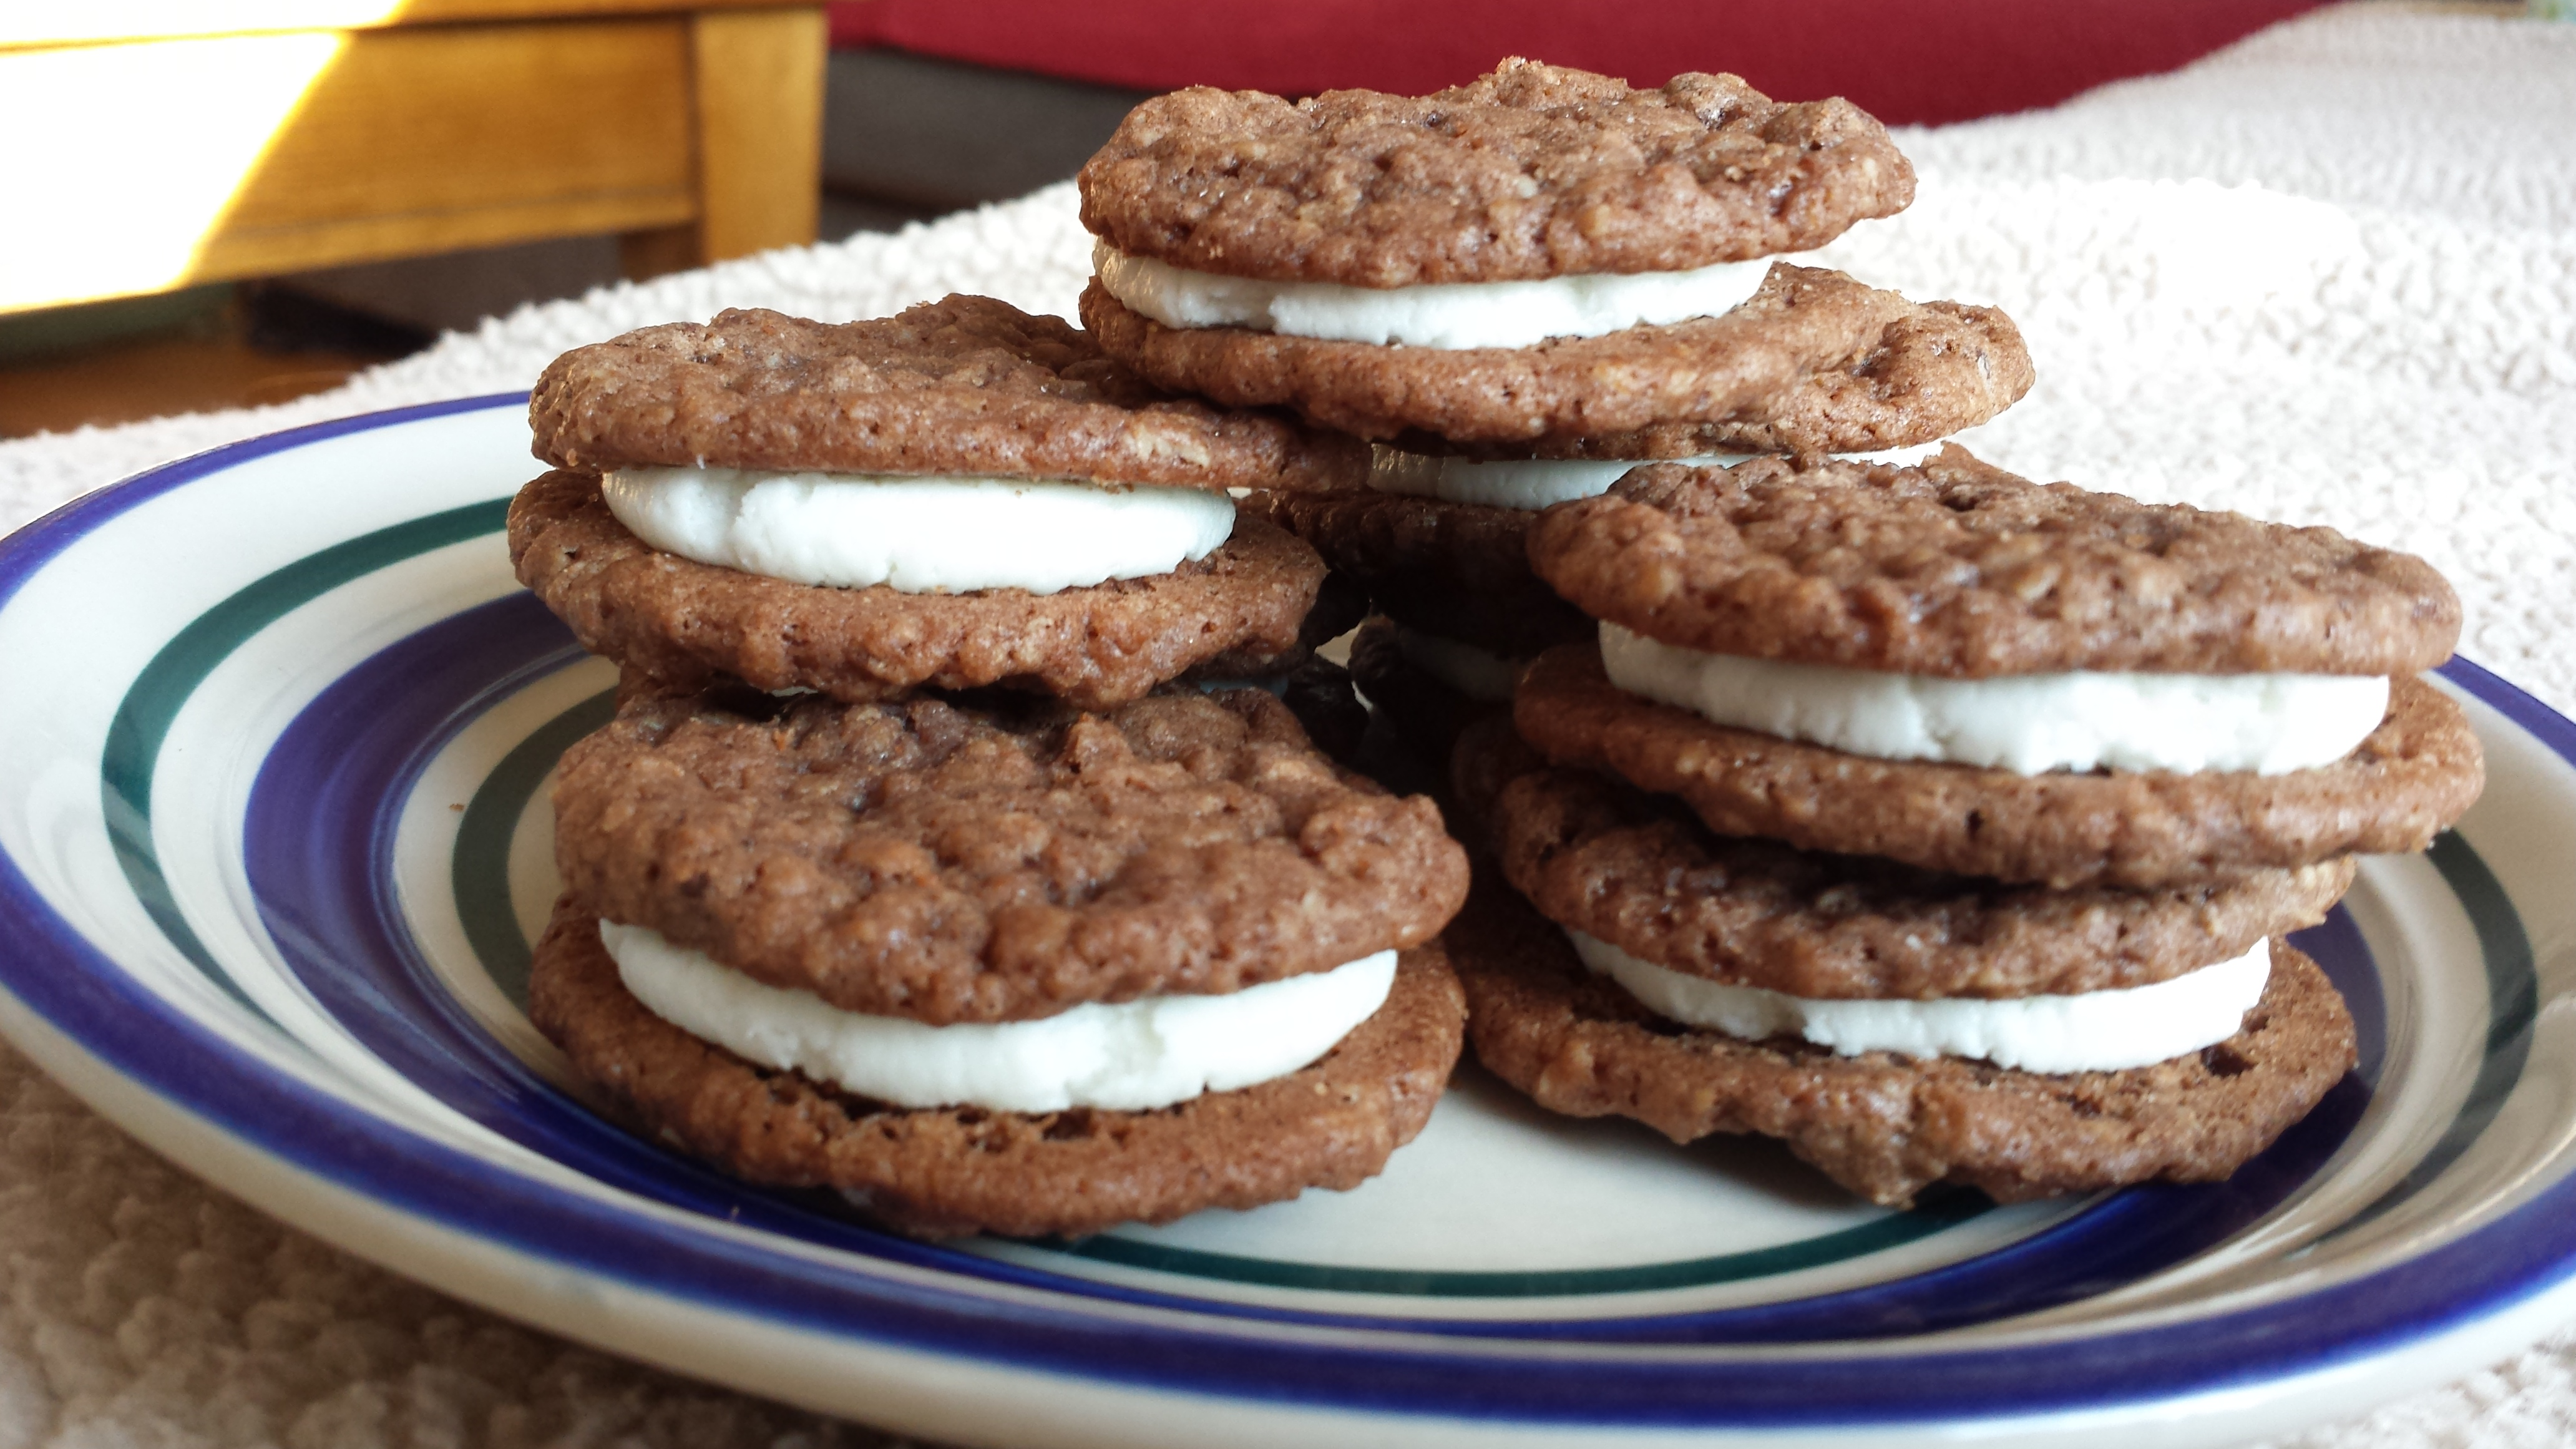 Oatmeal Cream Pies with Chocolate